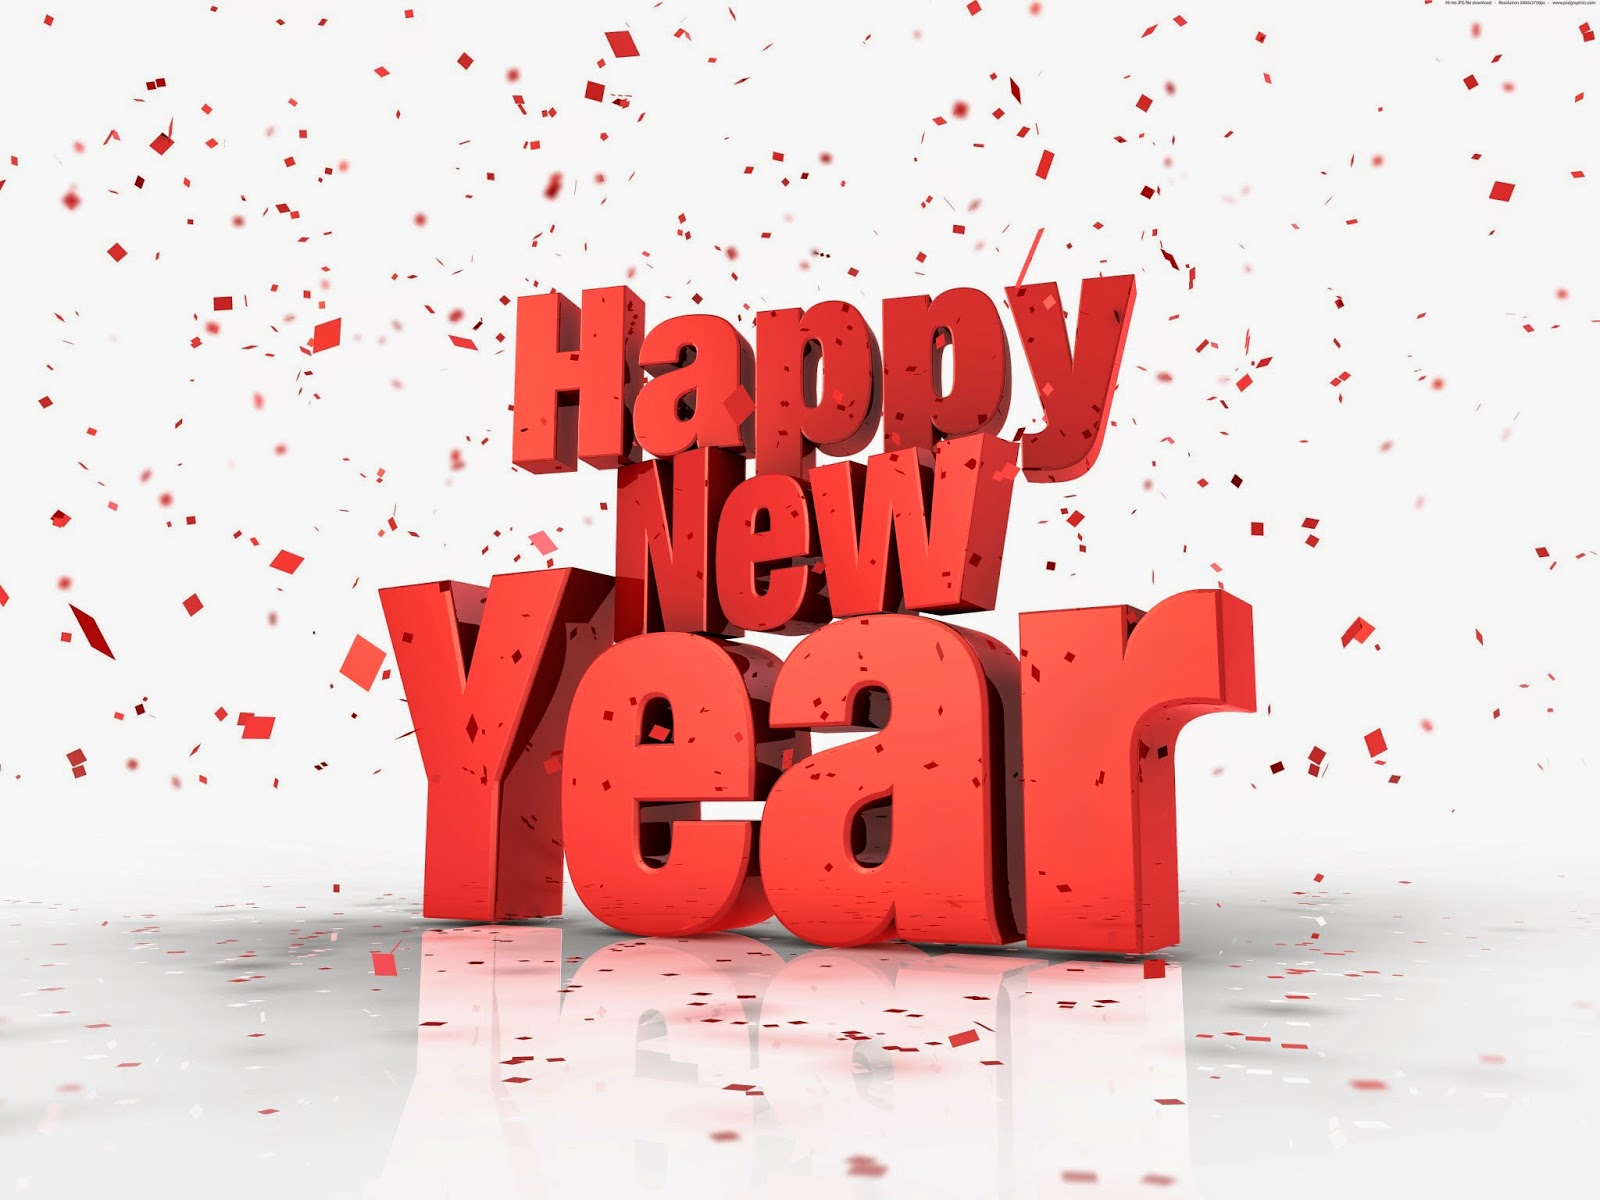 Happy New Year 2016 Greetings Card Images for Google Plus